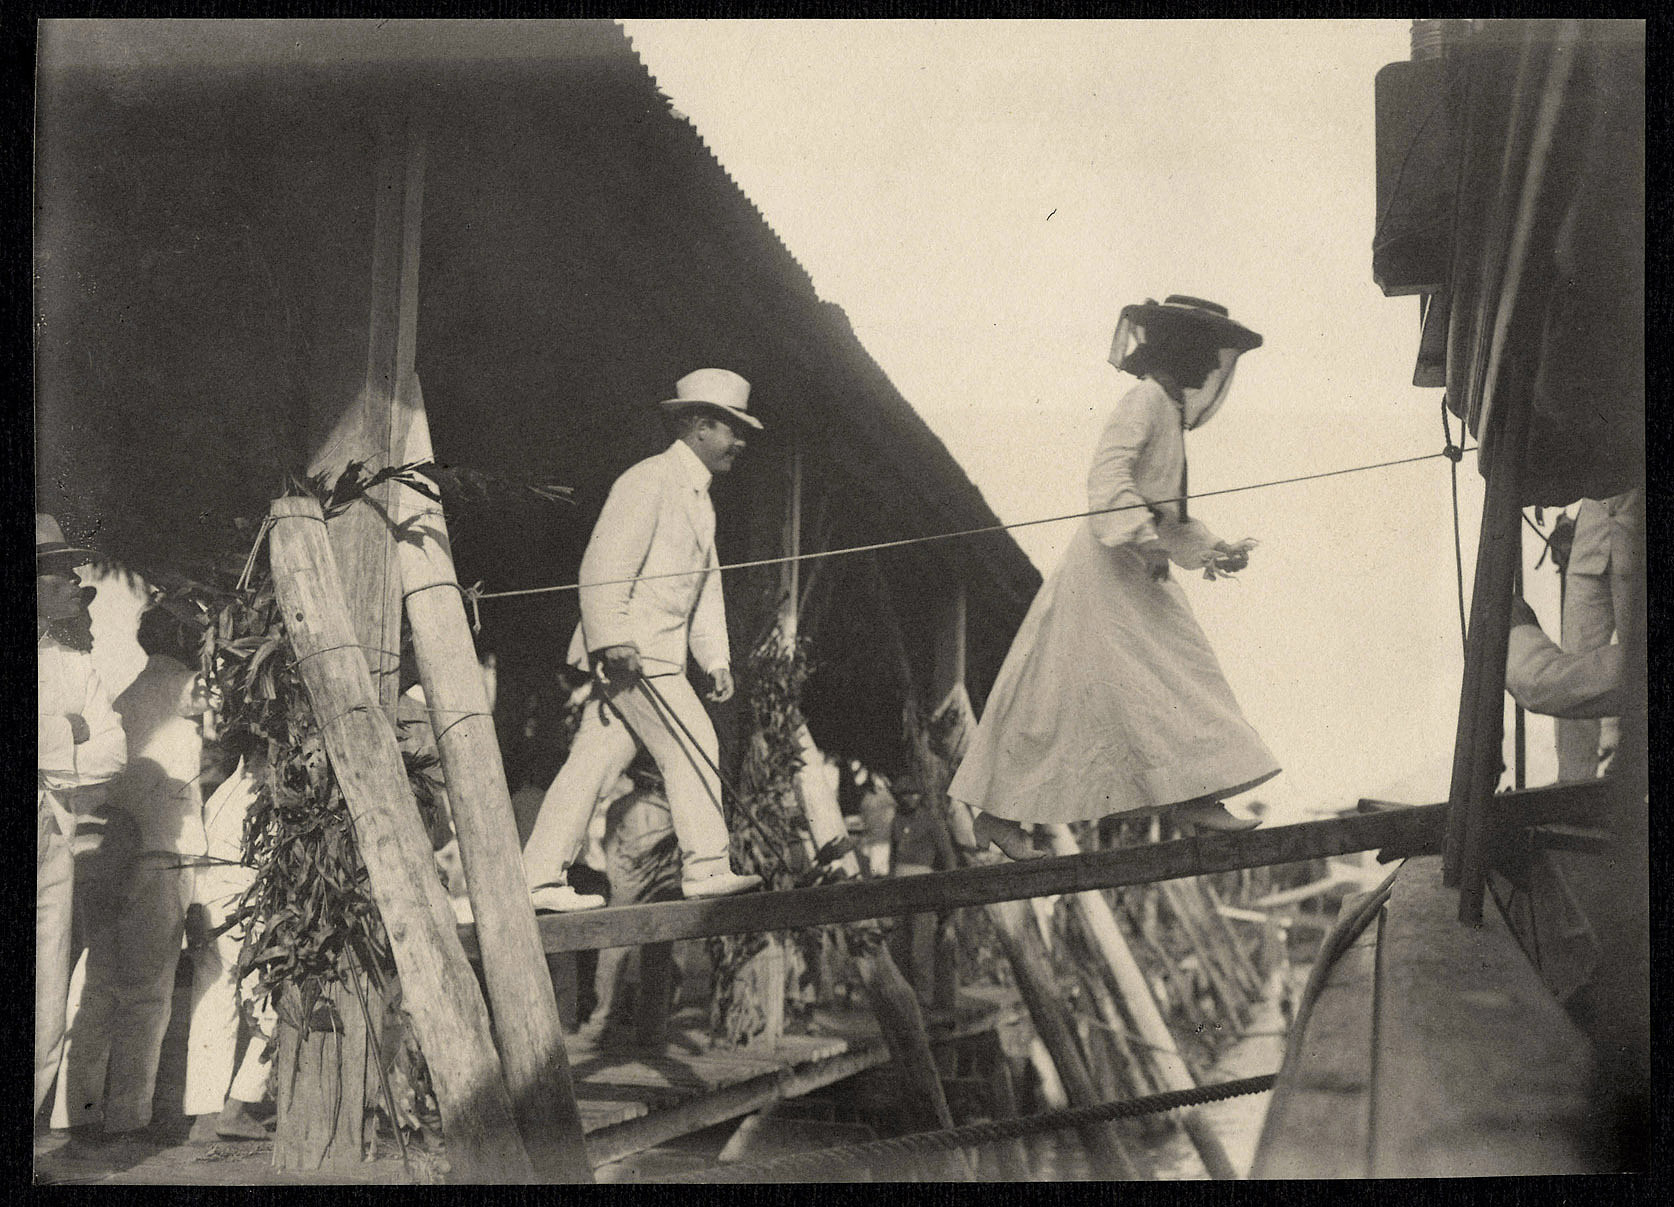 Alice Roosevelt and Nicholas Longworth boarding a ship, probably at Tacloban